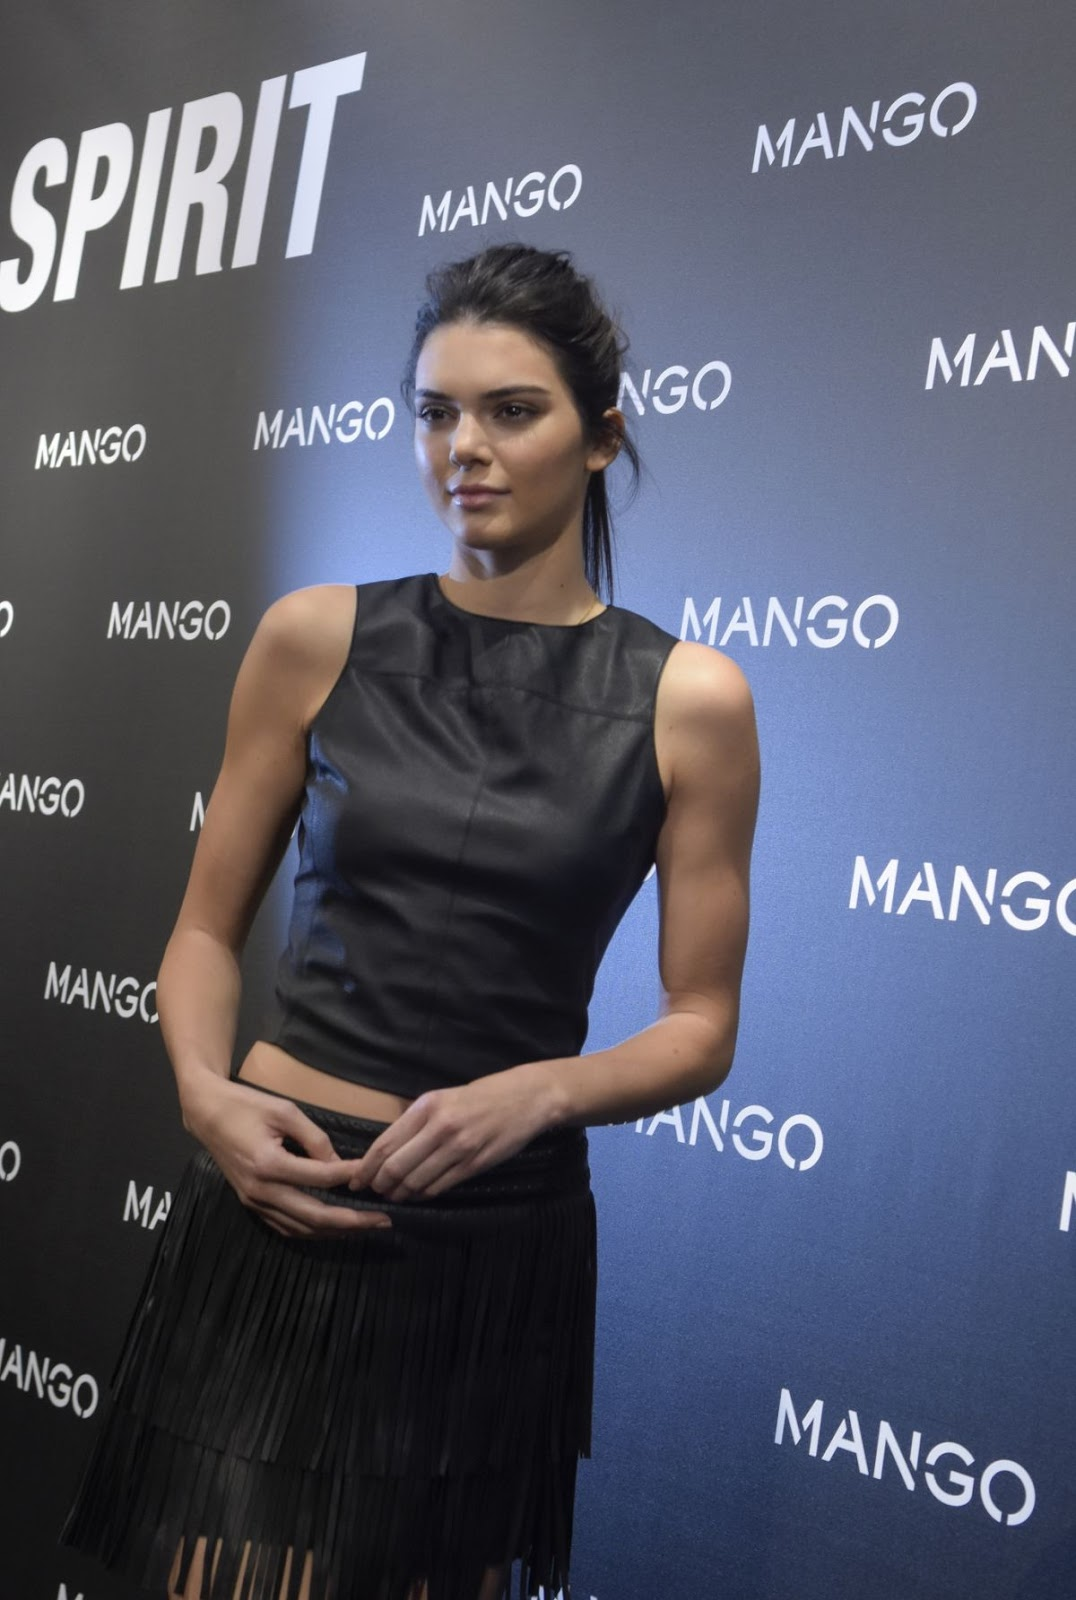 Frontrow & Mango Photocall of Kendall Jenner at Tribal Spirit in Barcelona